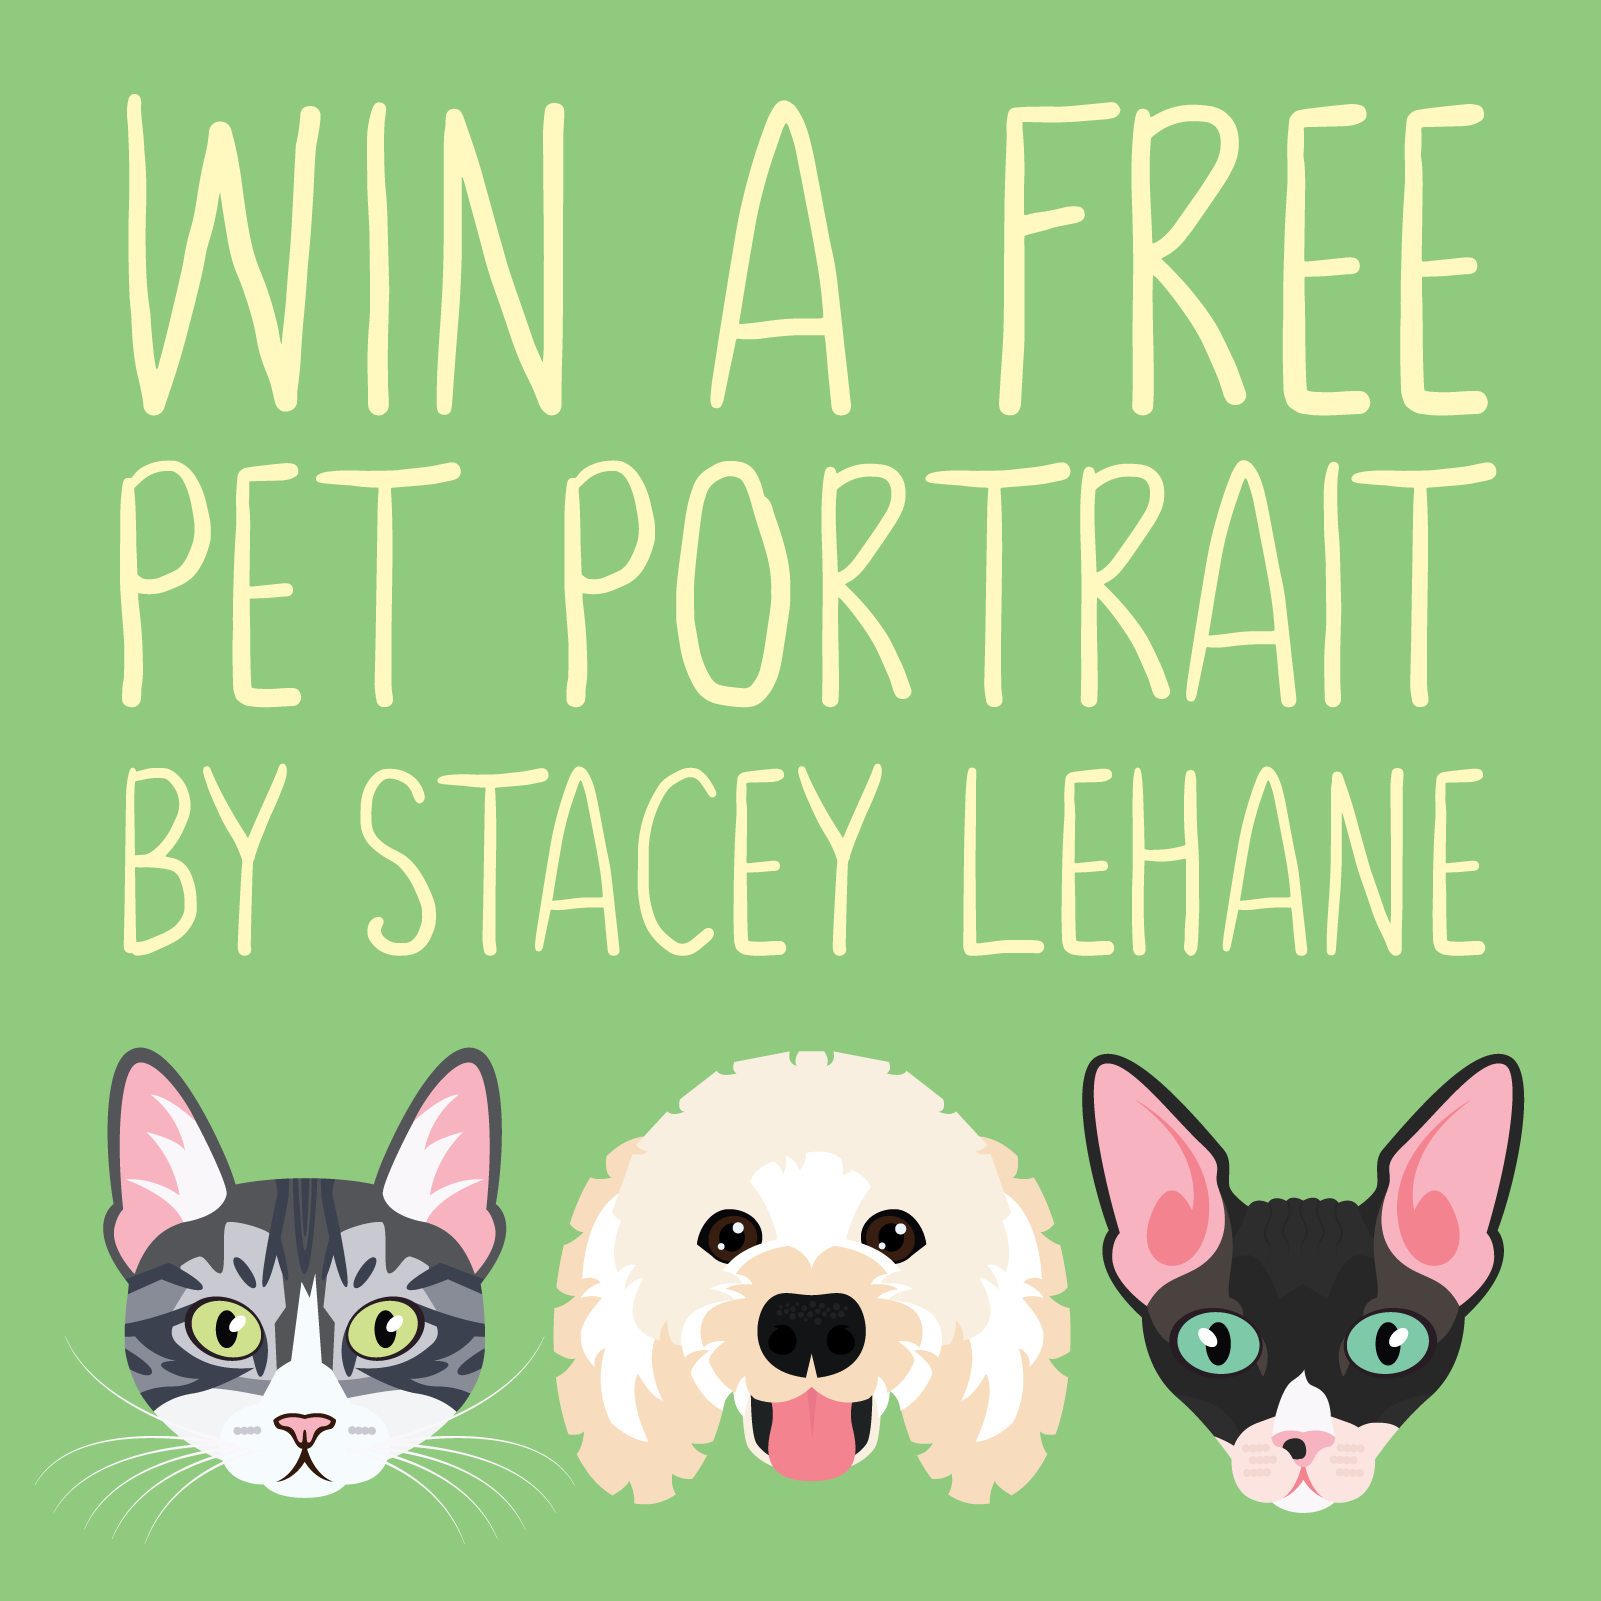 Win a free pet portrait by Stacey Lehane